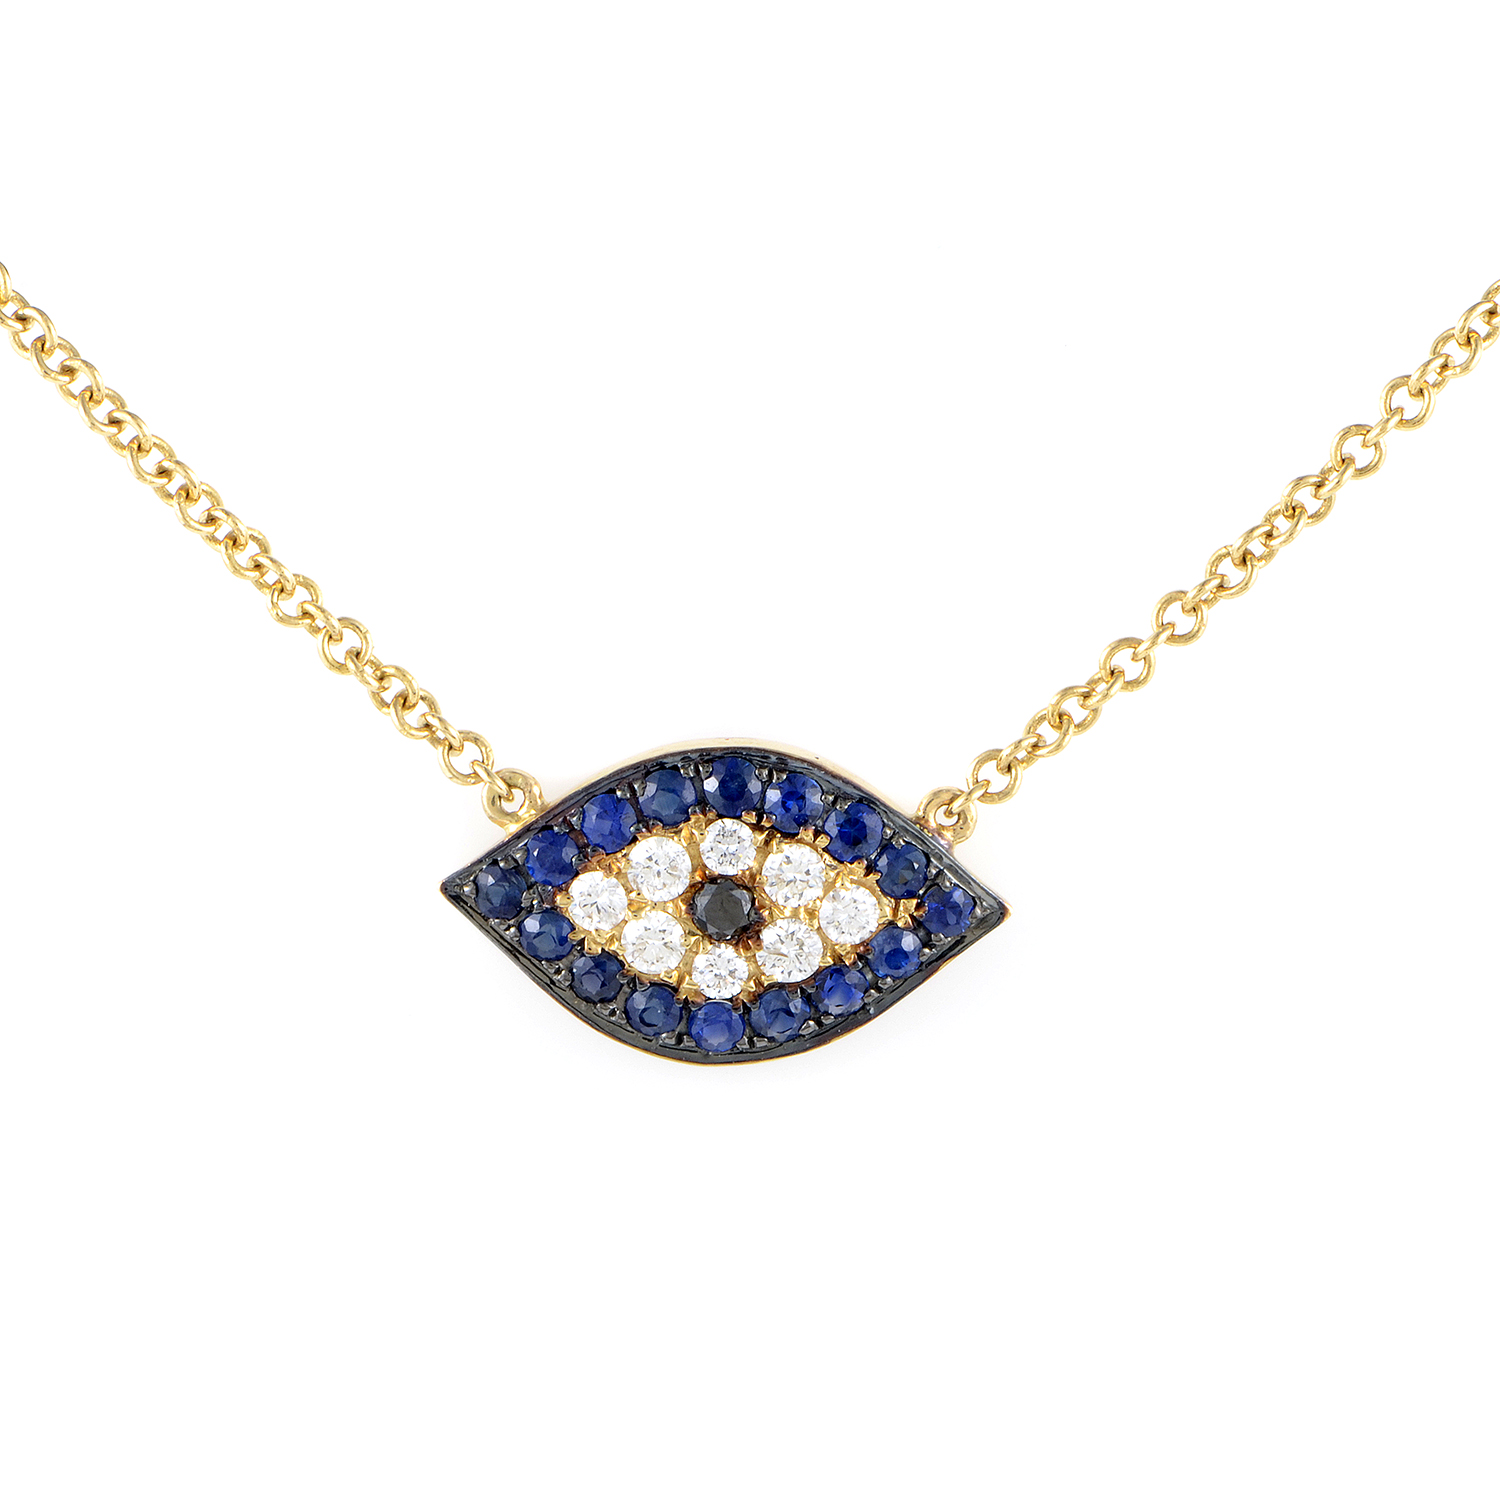 Women's 18K Yellow Gold Diamond & Sapphire Evil Eye Pendant Necklace KE5181PTZZSA